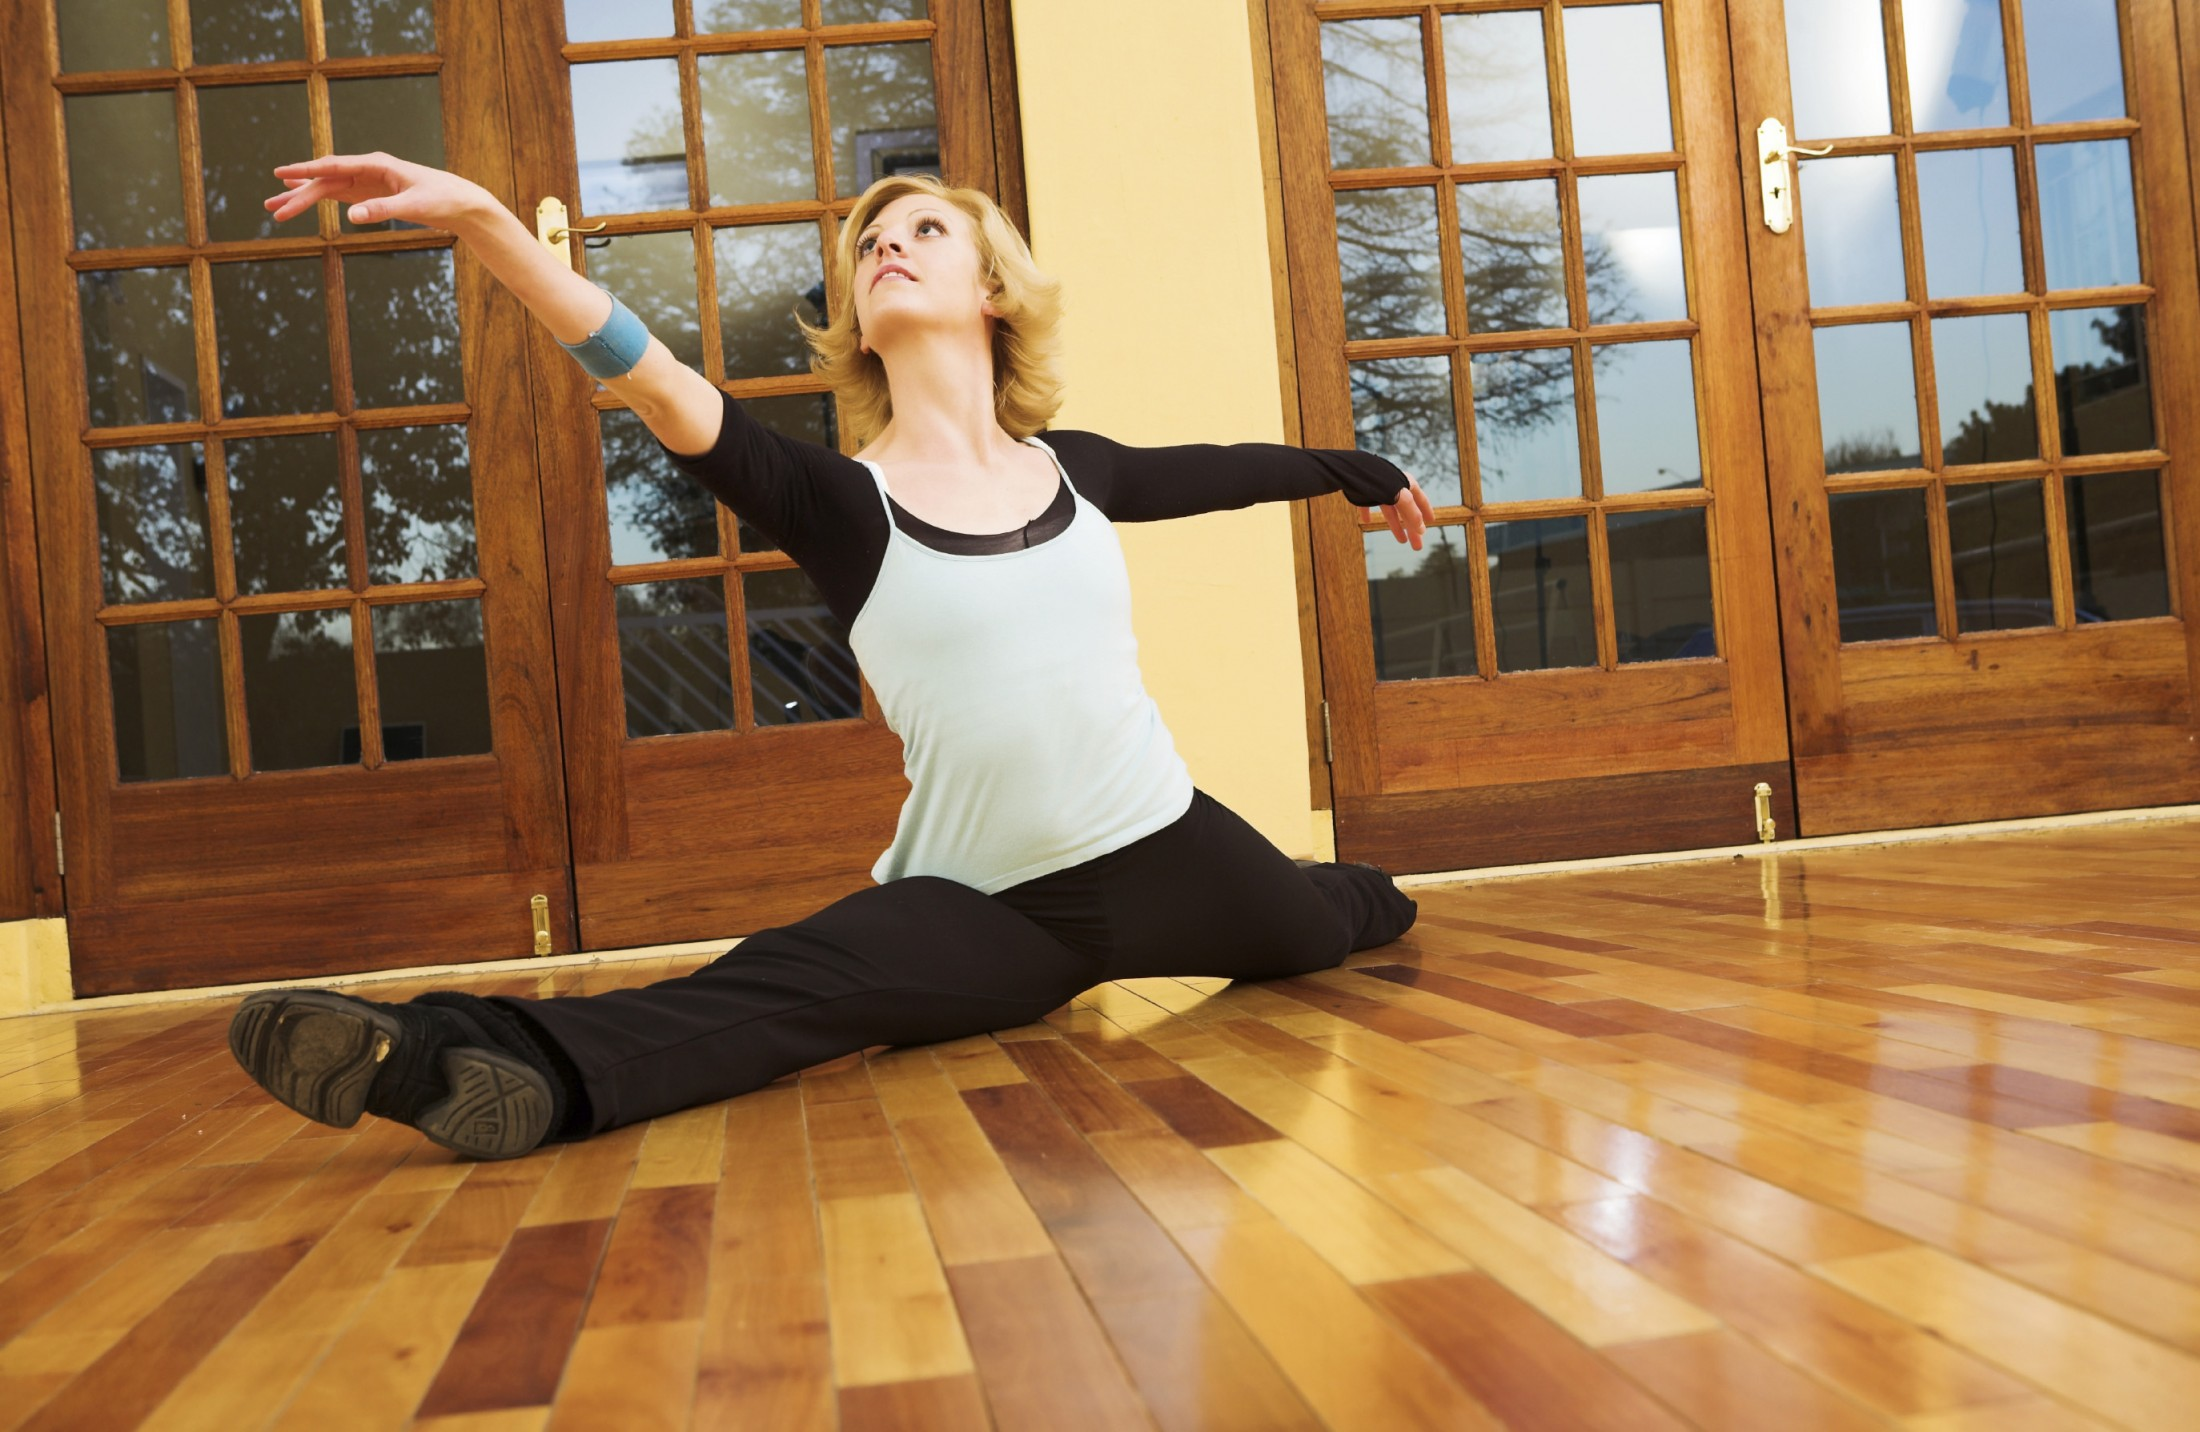 Prevent Expensive Call Backs for Squeaky Floors